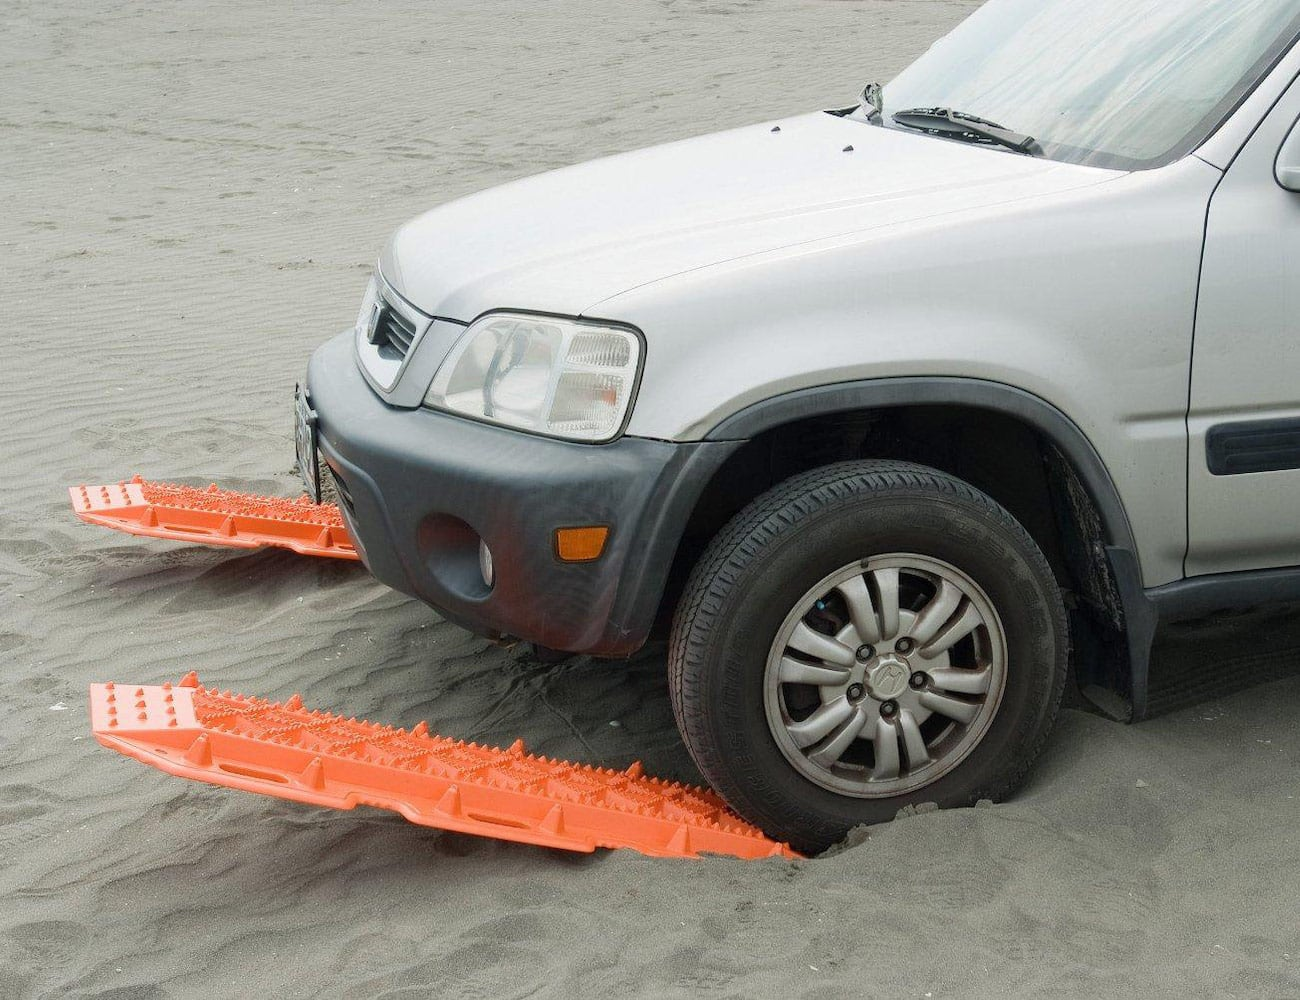 MAXSA Escaper Buddy Vehicle Traction Mats